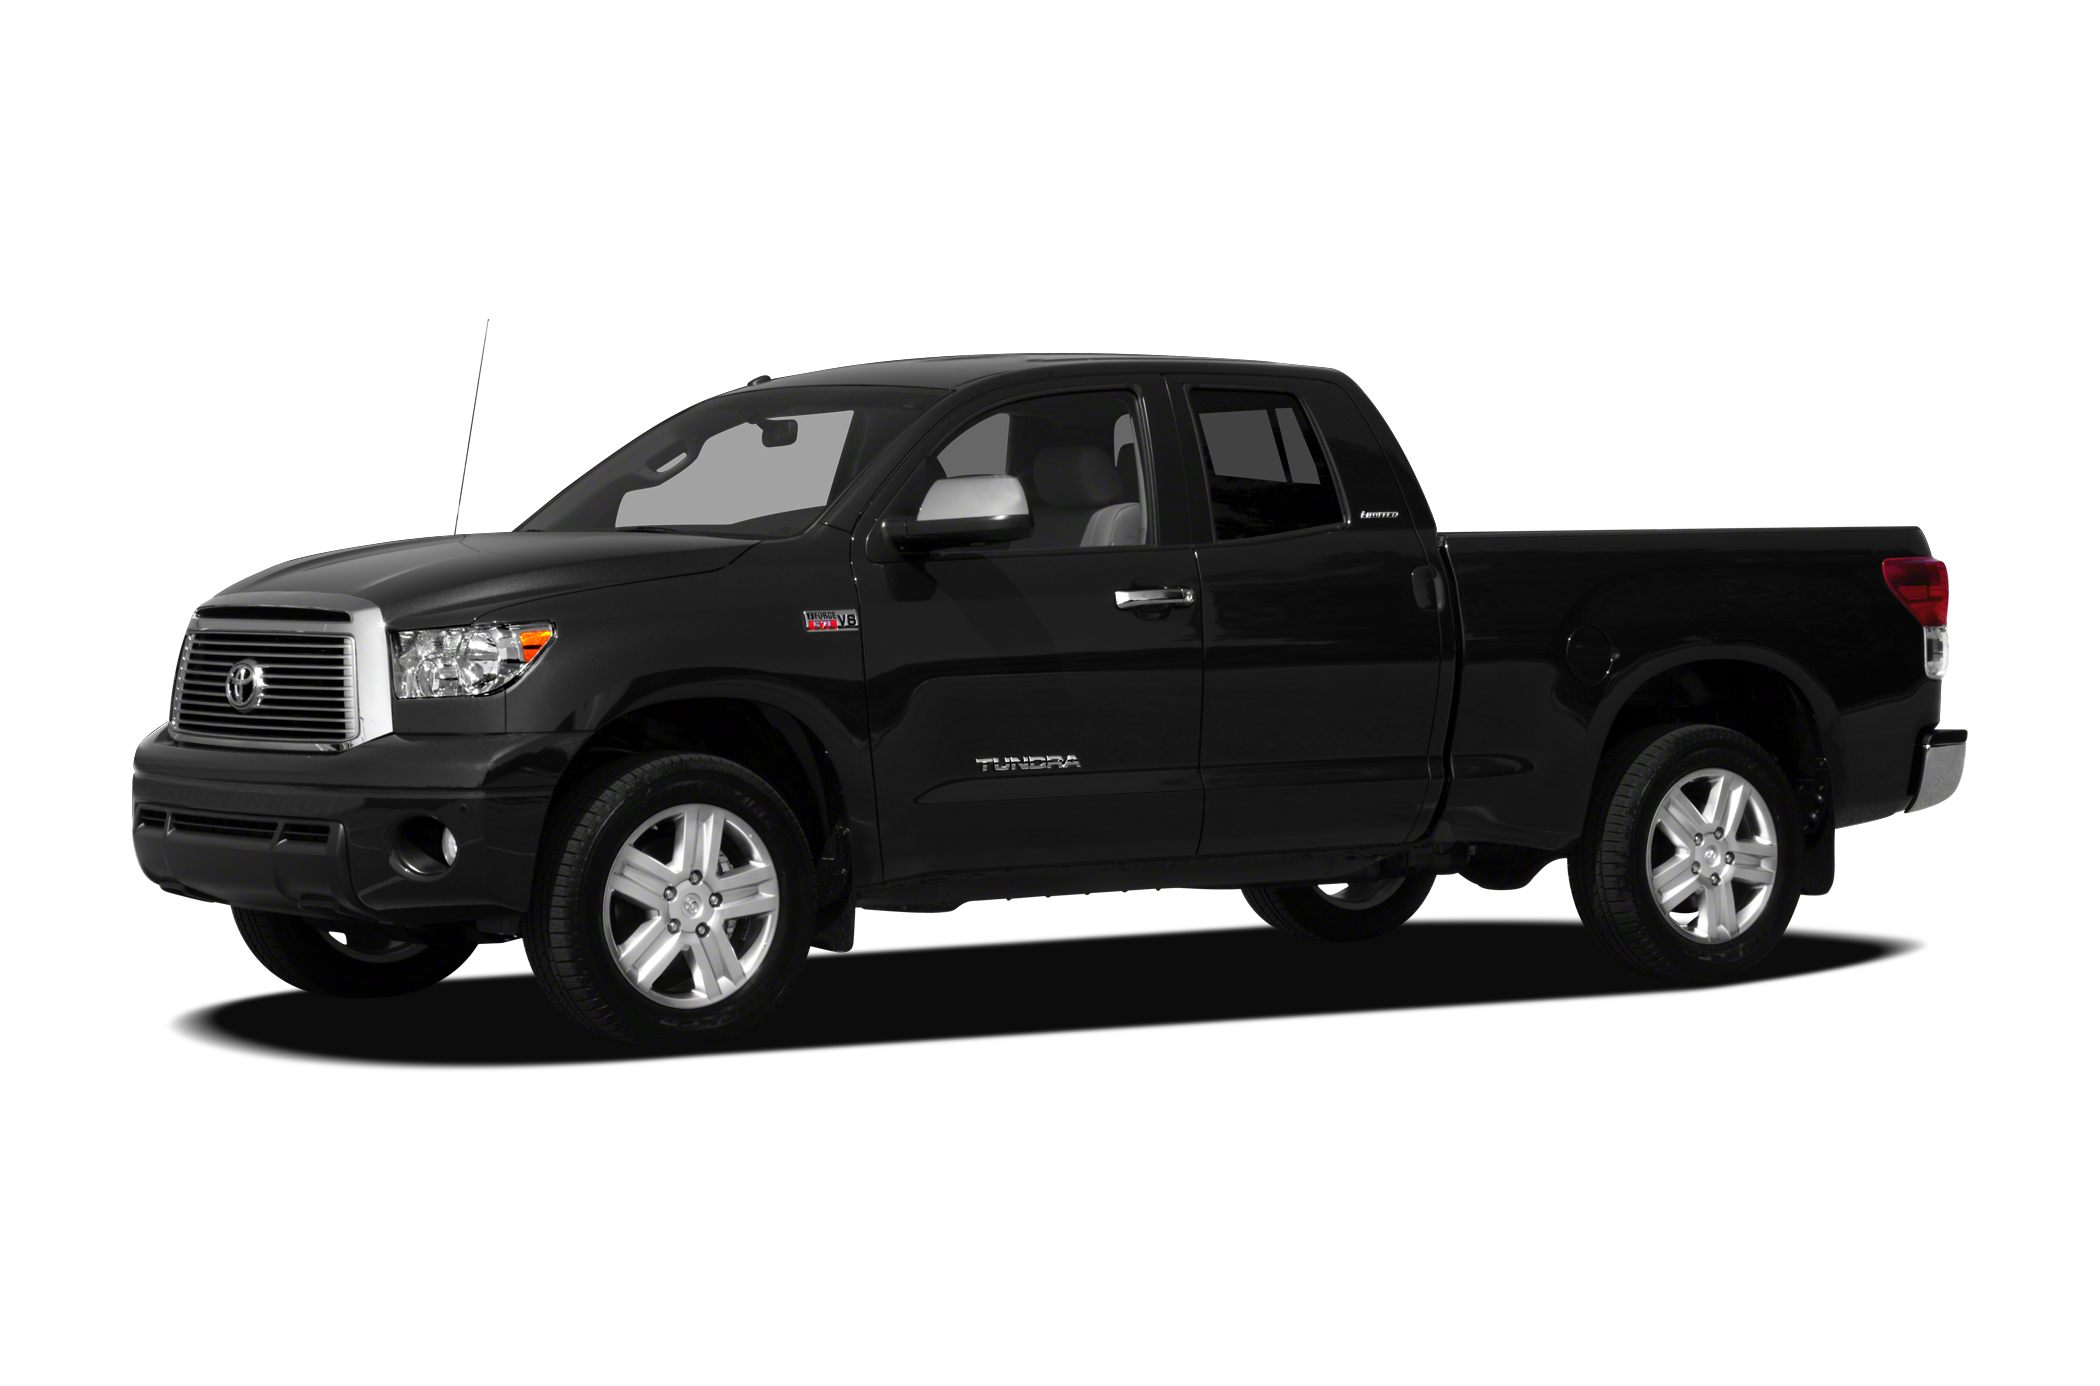 2012 Toyota Tundra Limited 5 7L V8 w FFV 4x4 Double Cab 6 6 ft box